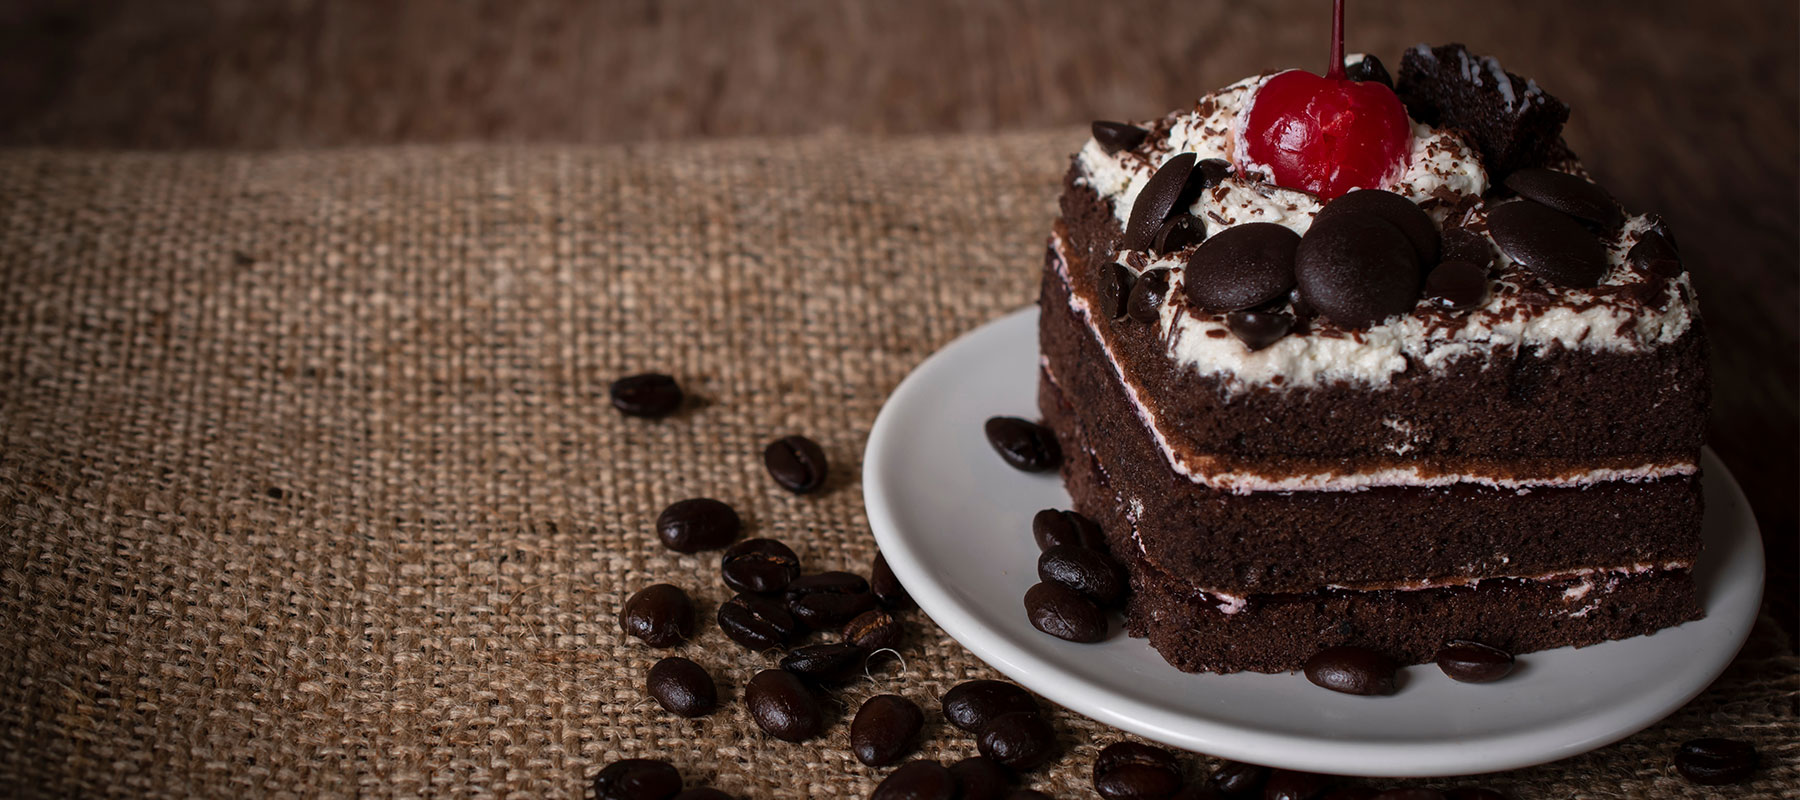 shutterstock image of chocolate cream cake sitting on a table covered in a burlap coffee bag with coffee beans sprinkled around